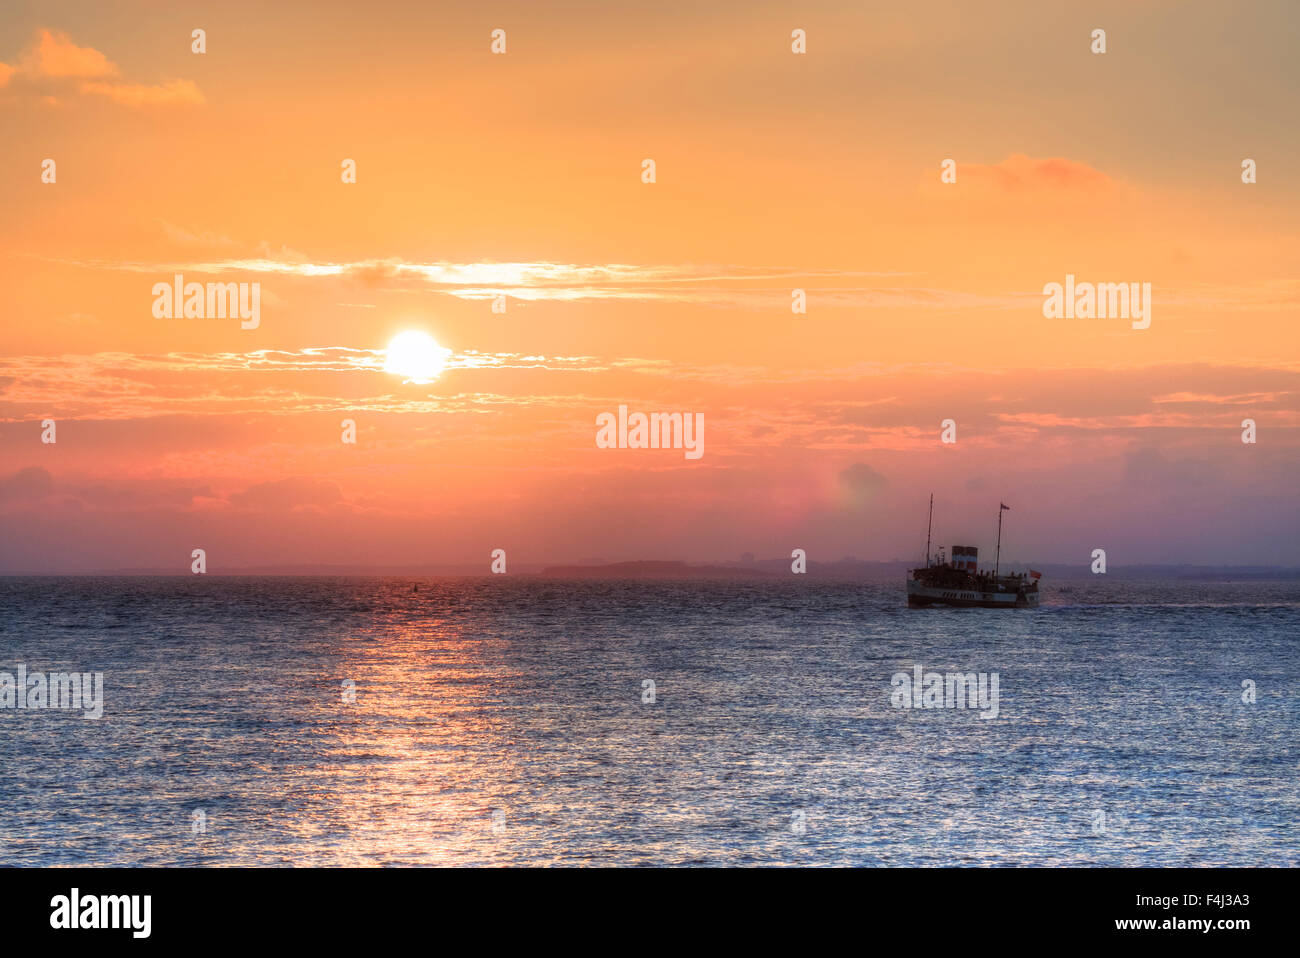 sunset over the Solent in Milford on Sea, Hampshire, England, United Kingdom - Stock Image